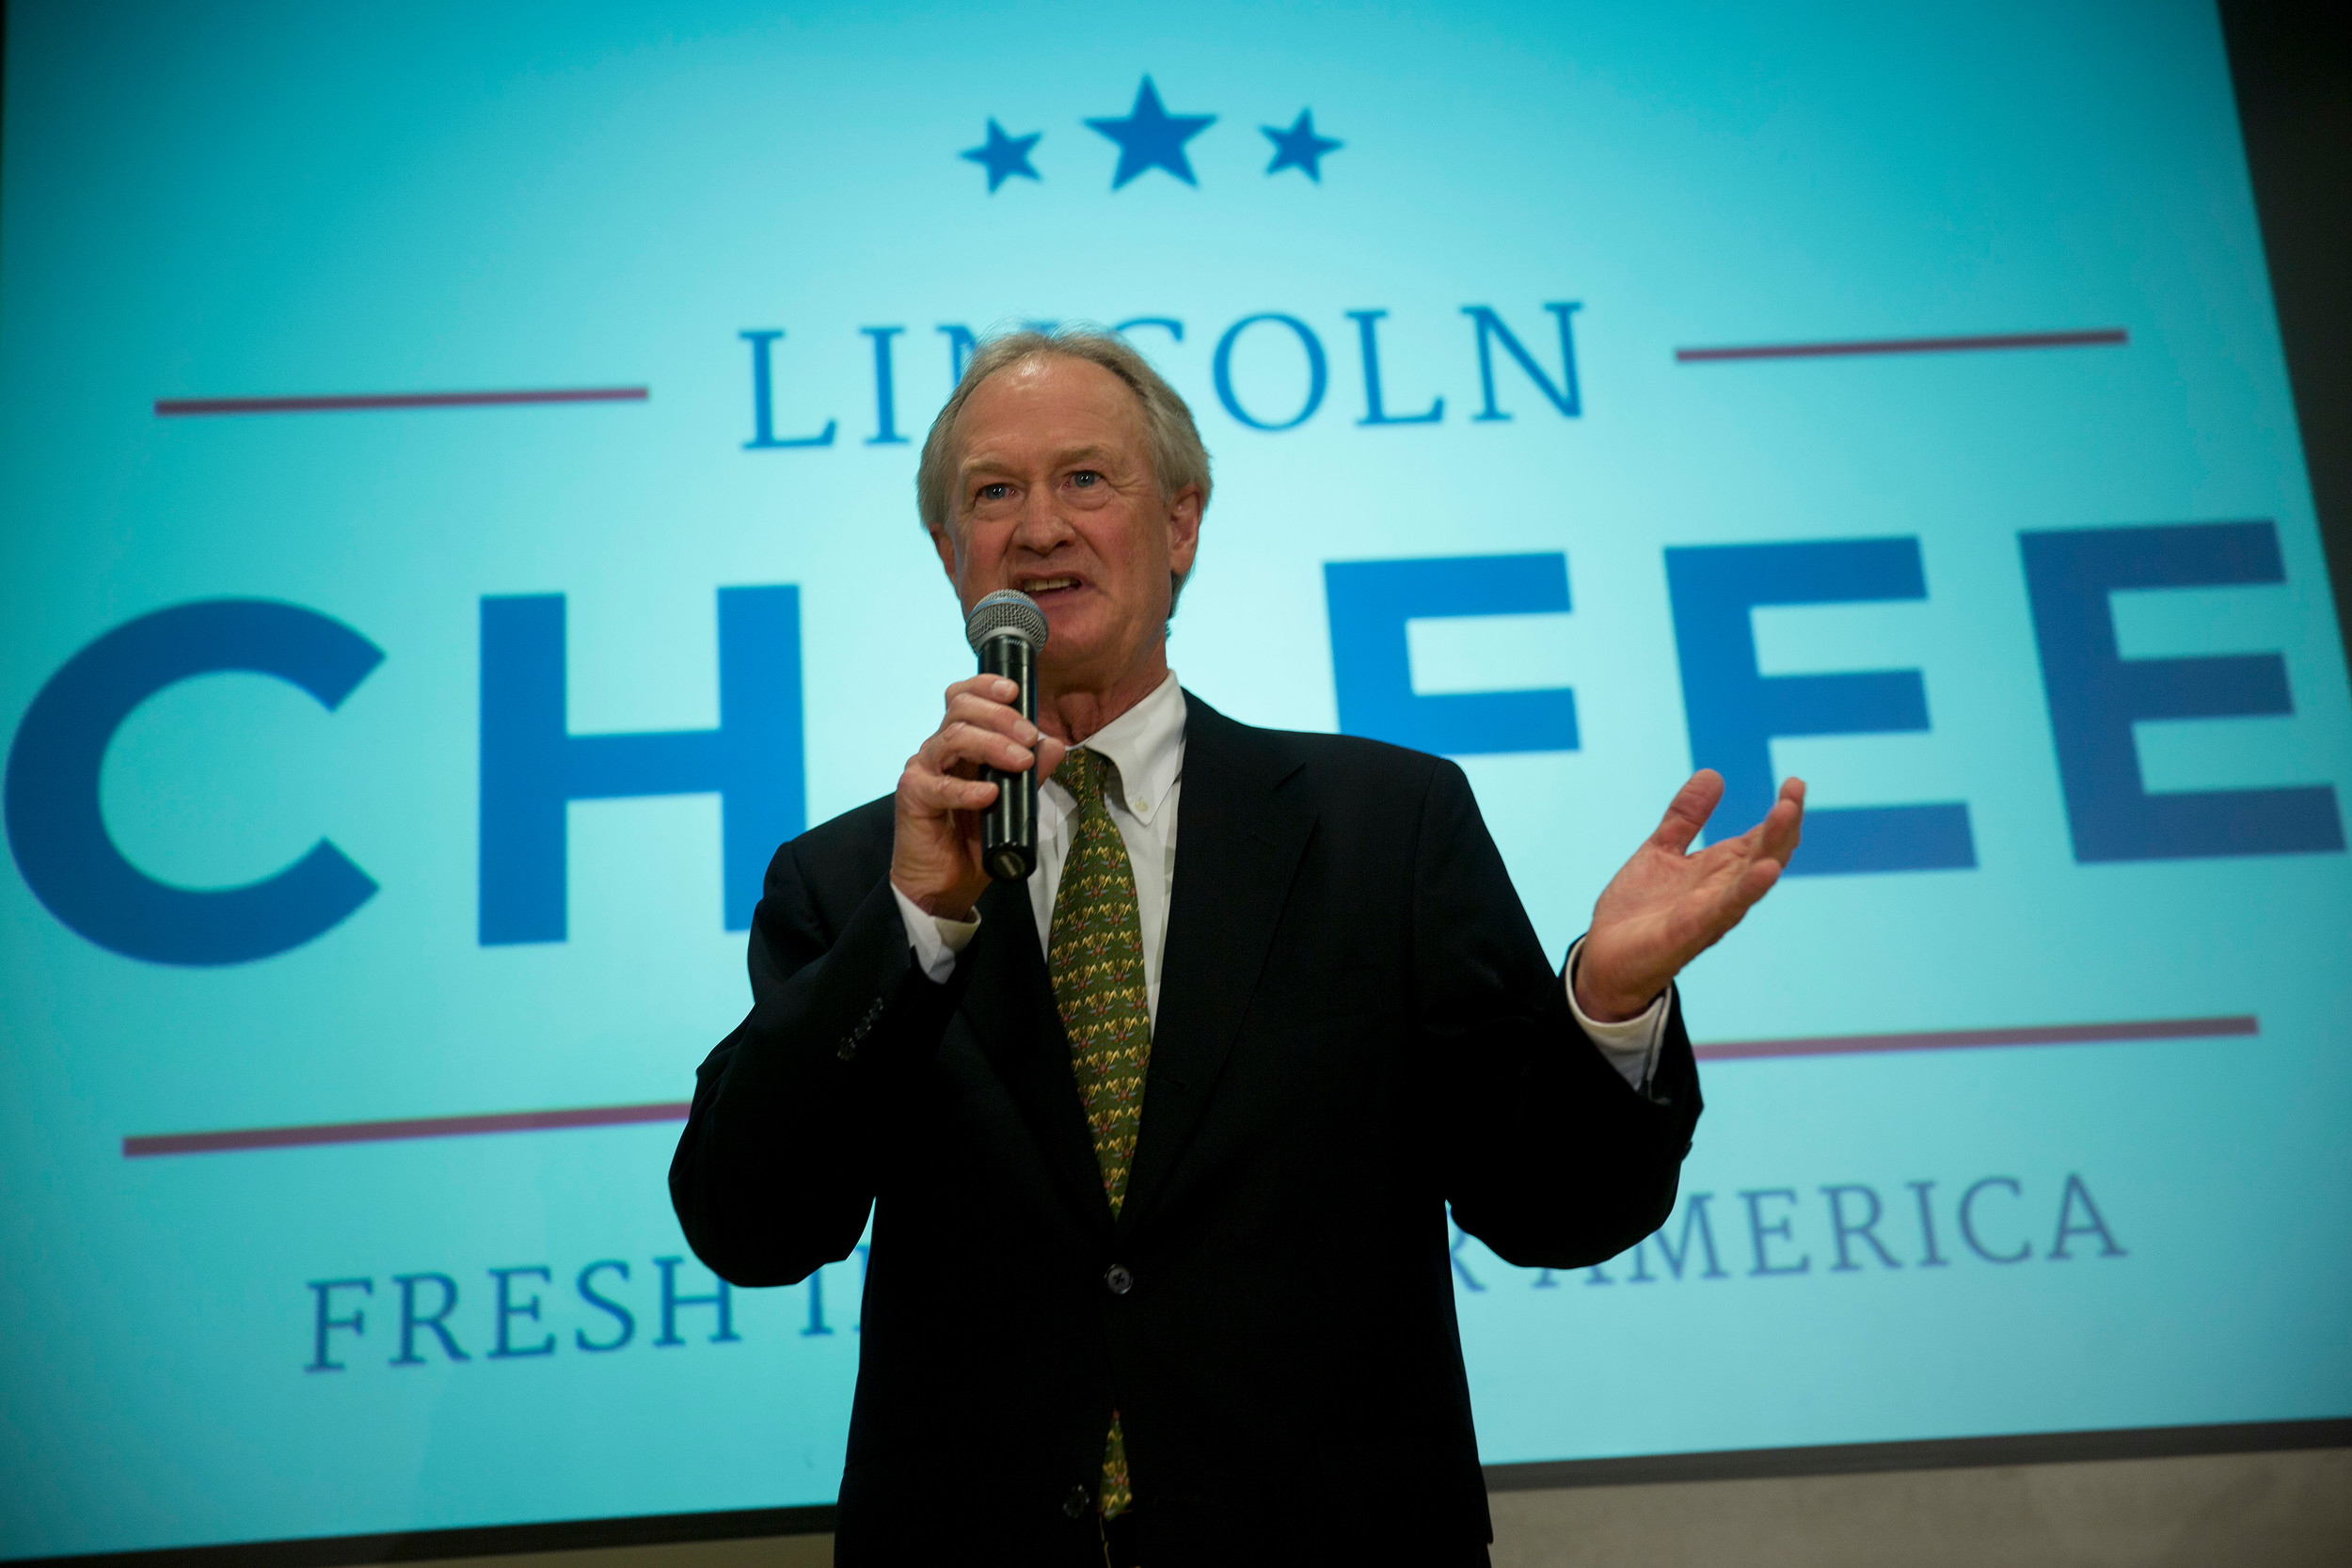 DEMOCRATIC PRESIDENTIAL candidate Lincoln D. Chafee, former governor of Rhode Island, owns more Hewlett-Packard stock than its former CEO Carly Fiorina, a Republican who also is running for president. / BLOOMBERG NEWS/ANDREW HARRER